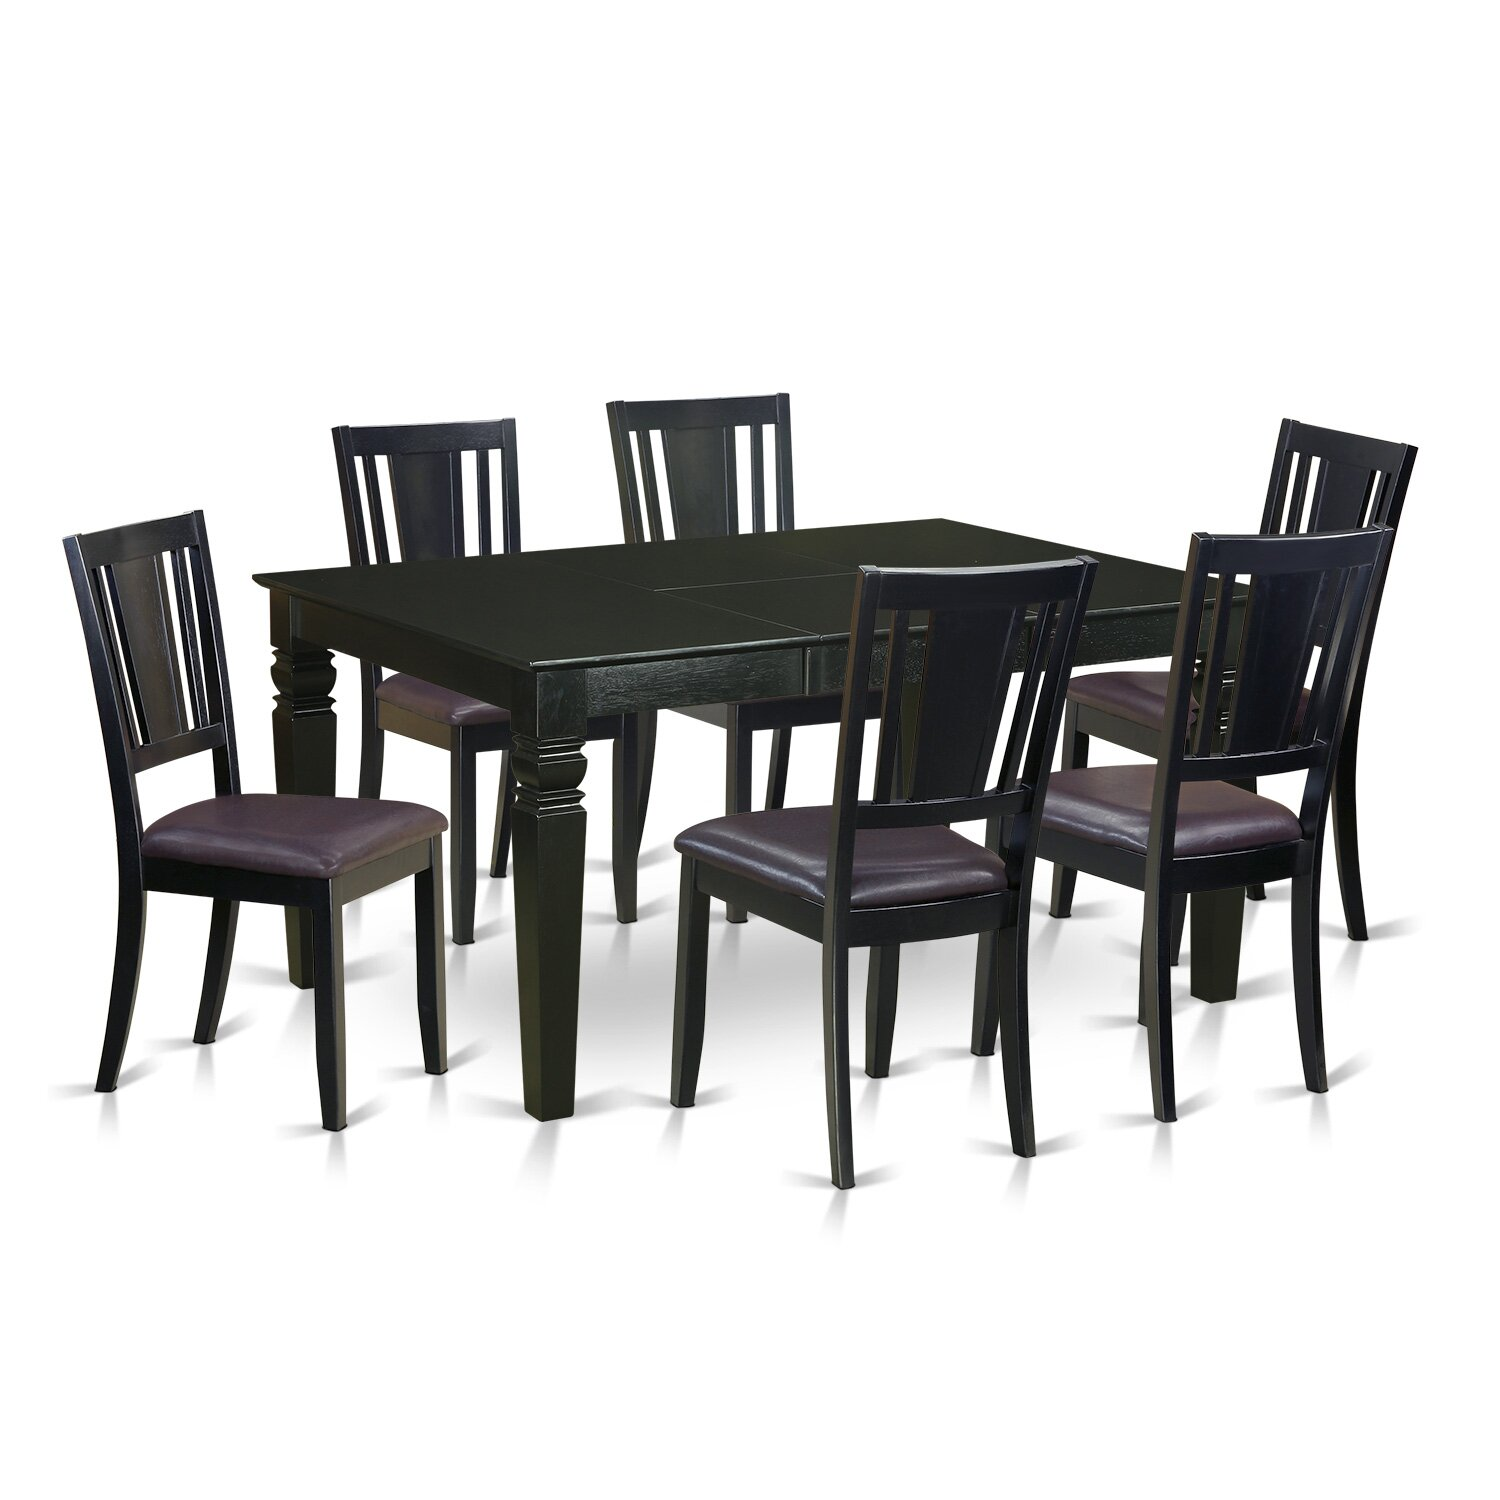 Wooden importers weston 7 piece dining set wayfair for Kitchen dining room chairs